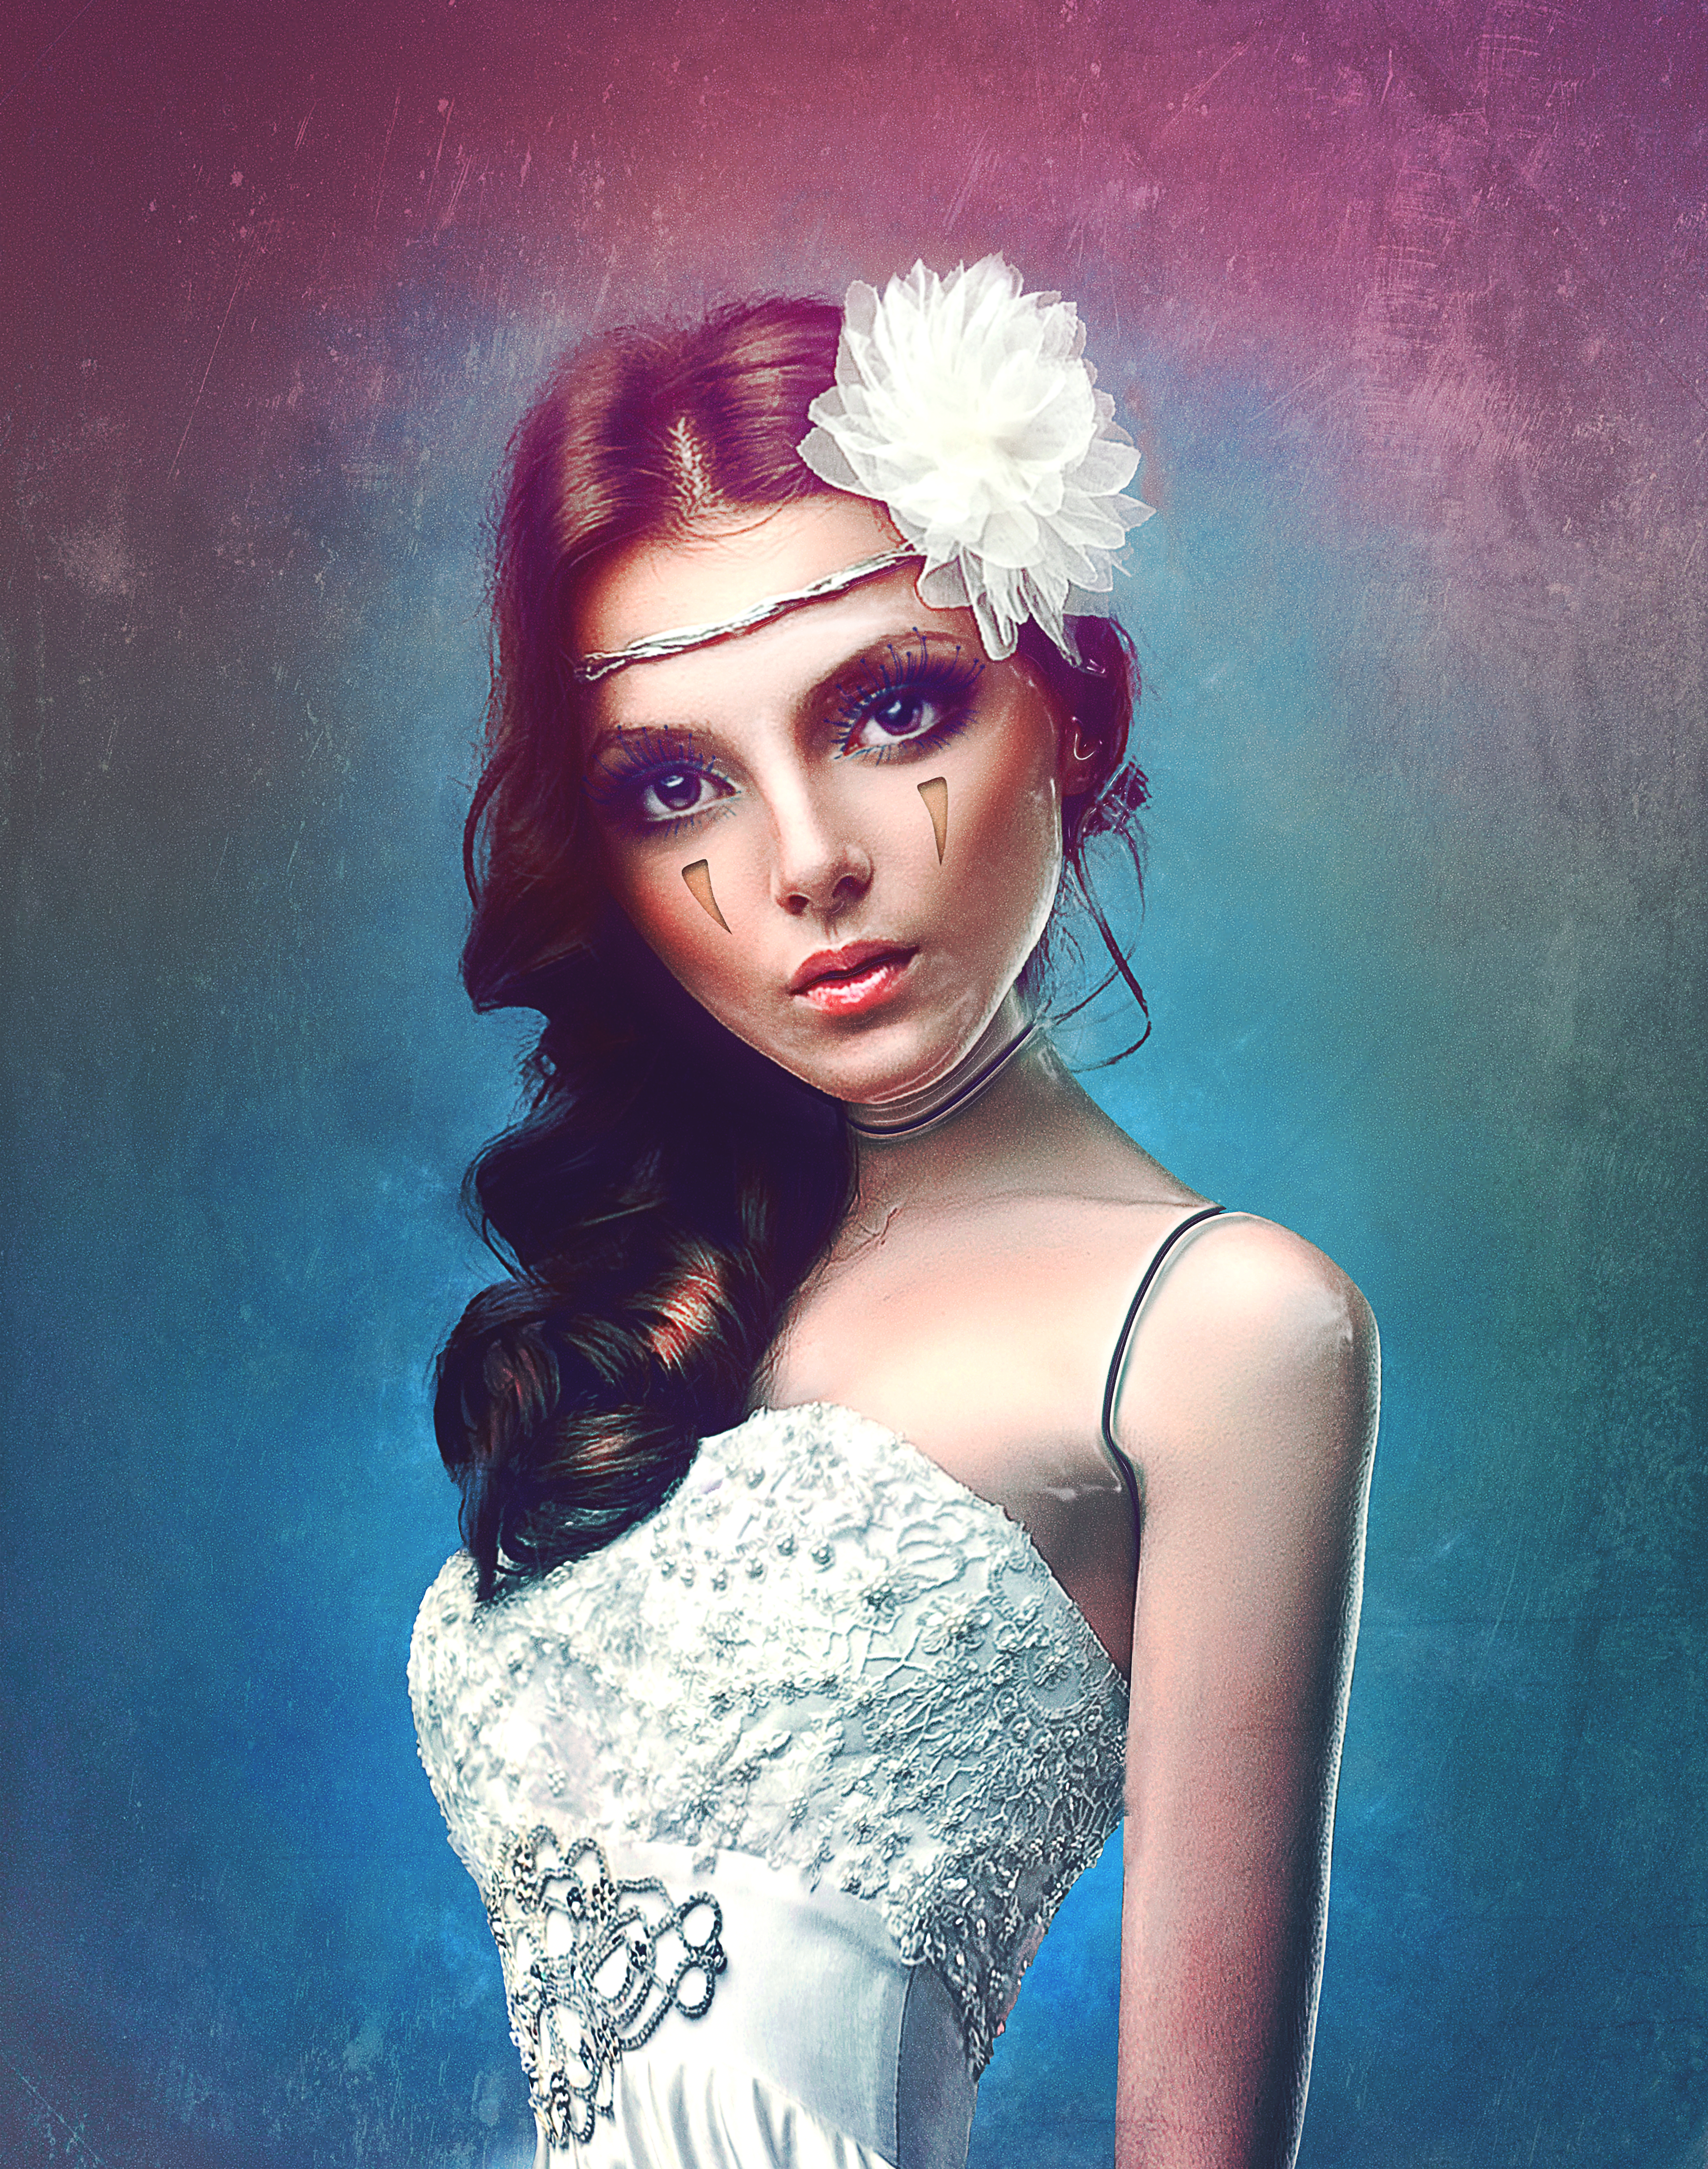 63647 Screensavers and Wallpapers Pretty for phone. Download Art, Sight, Opinion, Girl, Digital Art, Pretty, Dress pictures for free